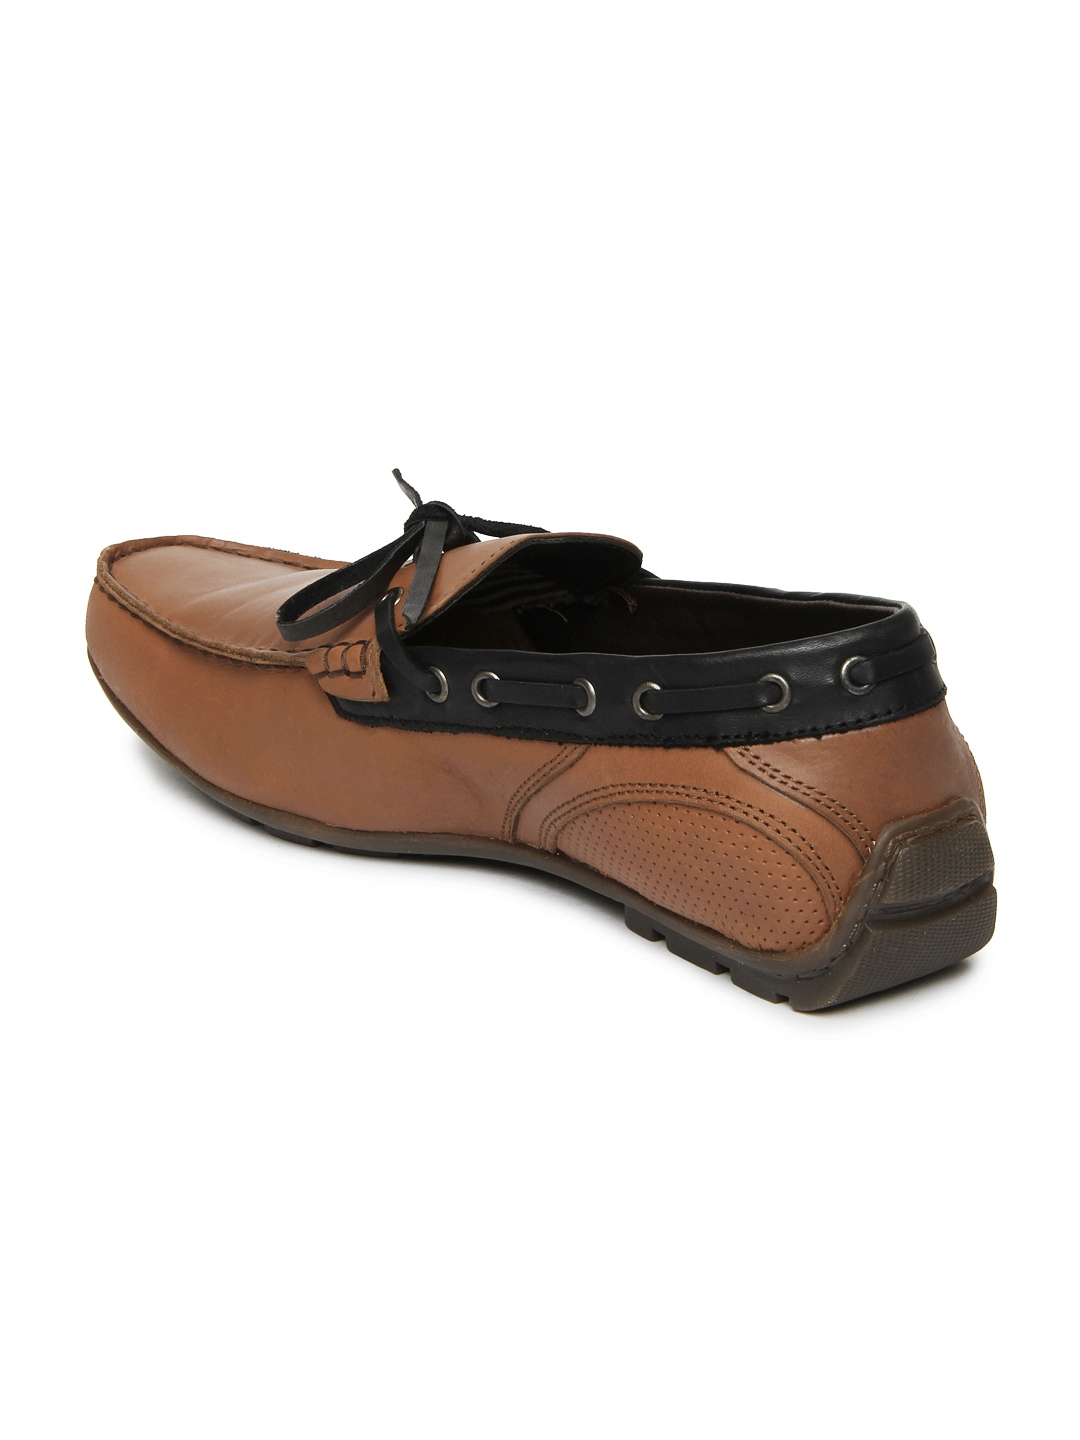 myntra numero uno brown leather boat shoes 408845